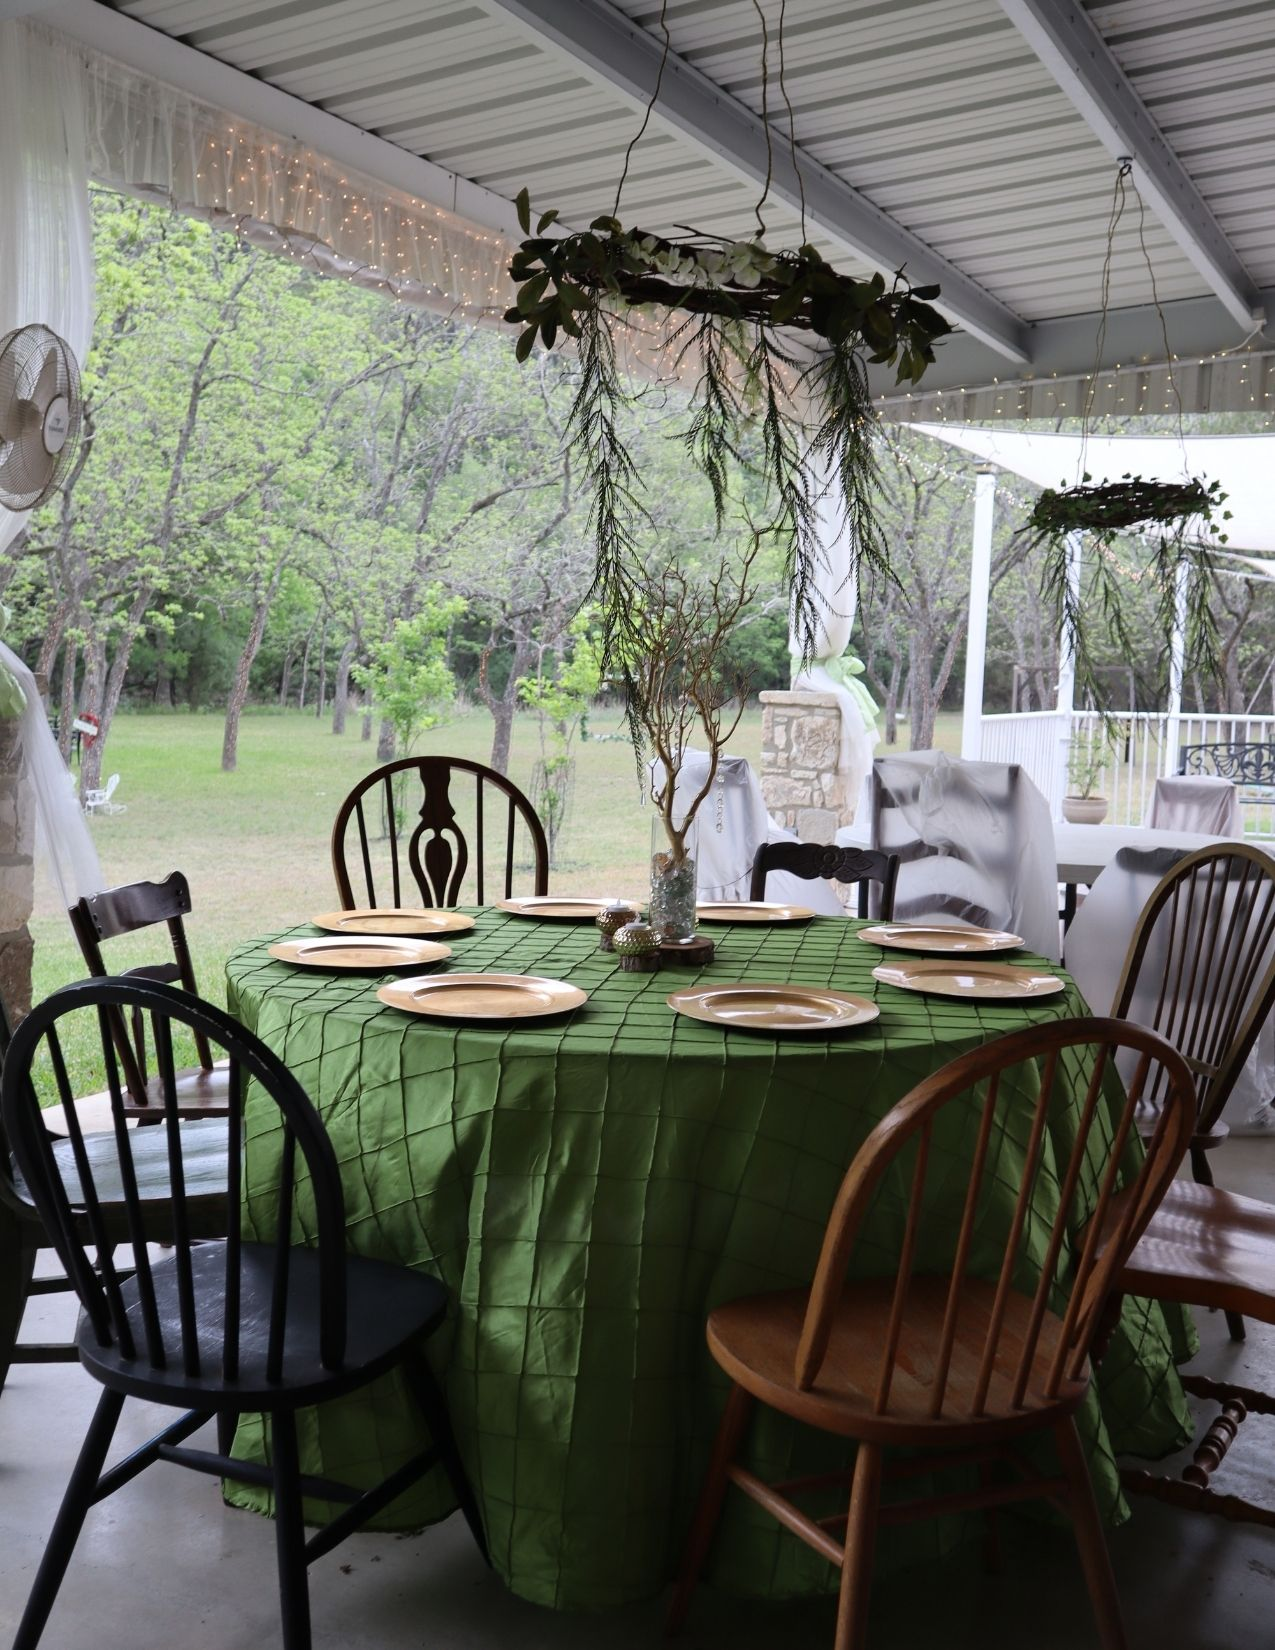 Nature Hill-Country Wedding Venue in Helotes, Texas